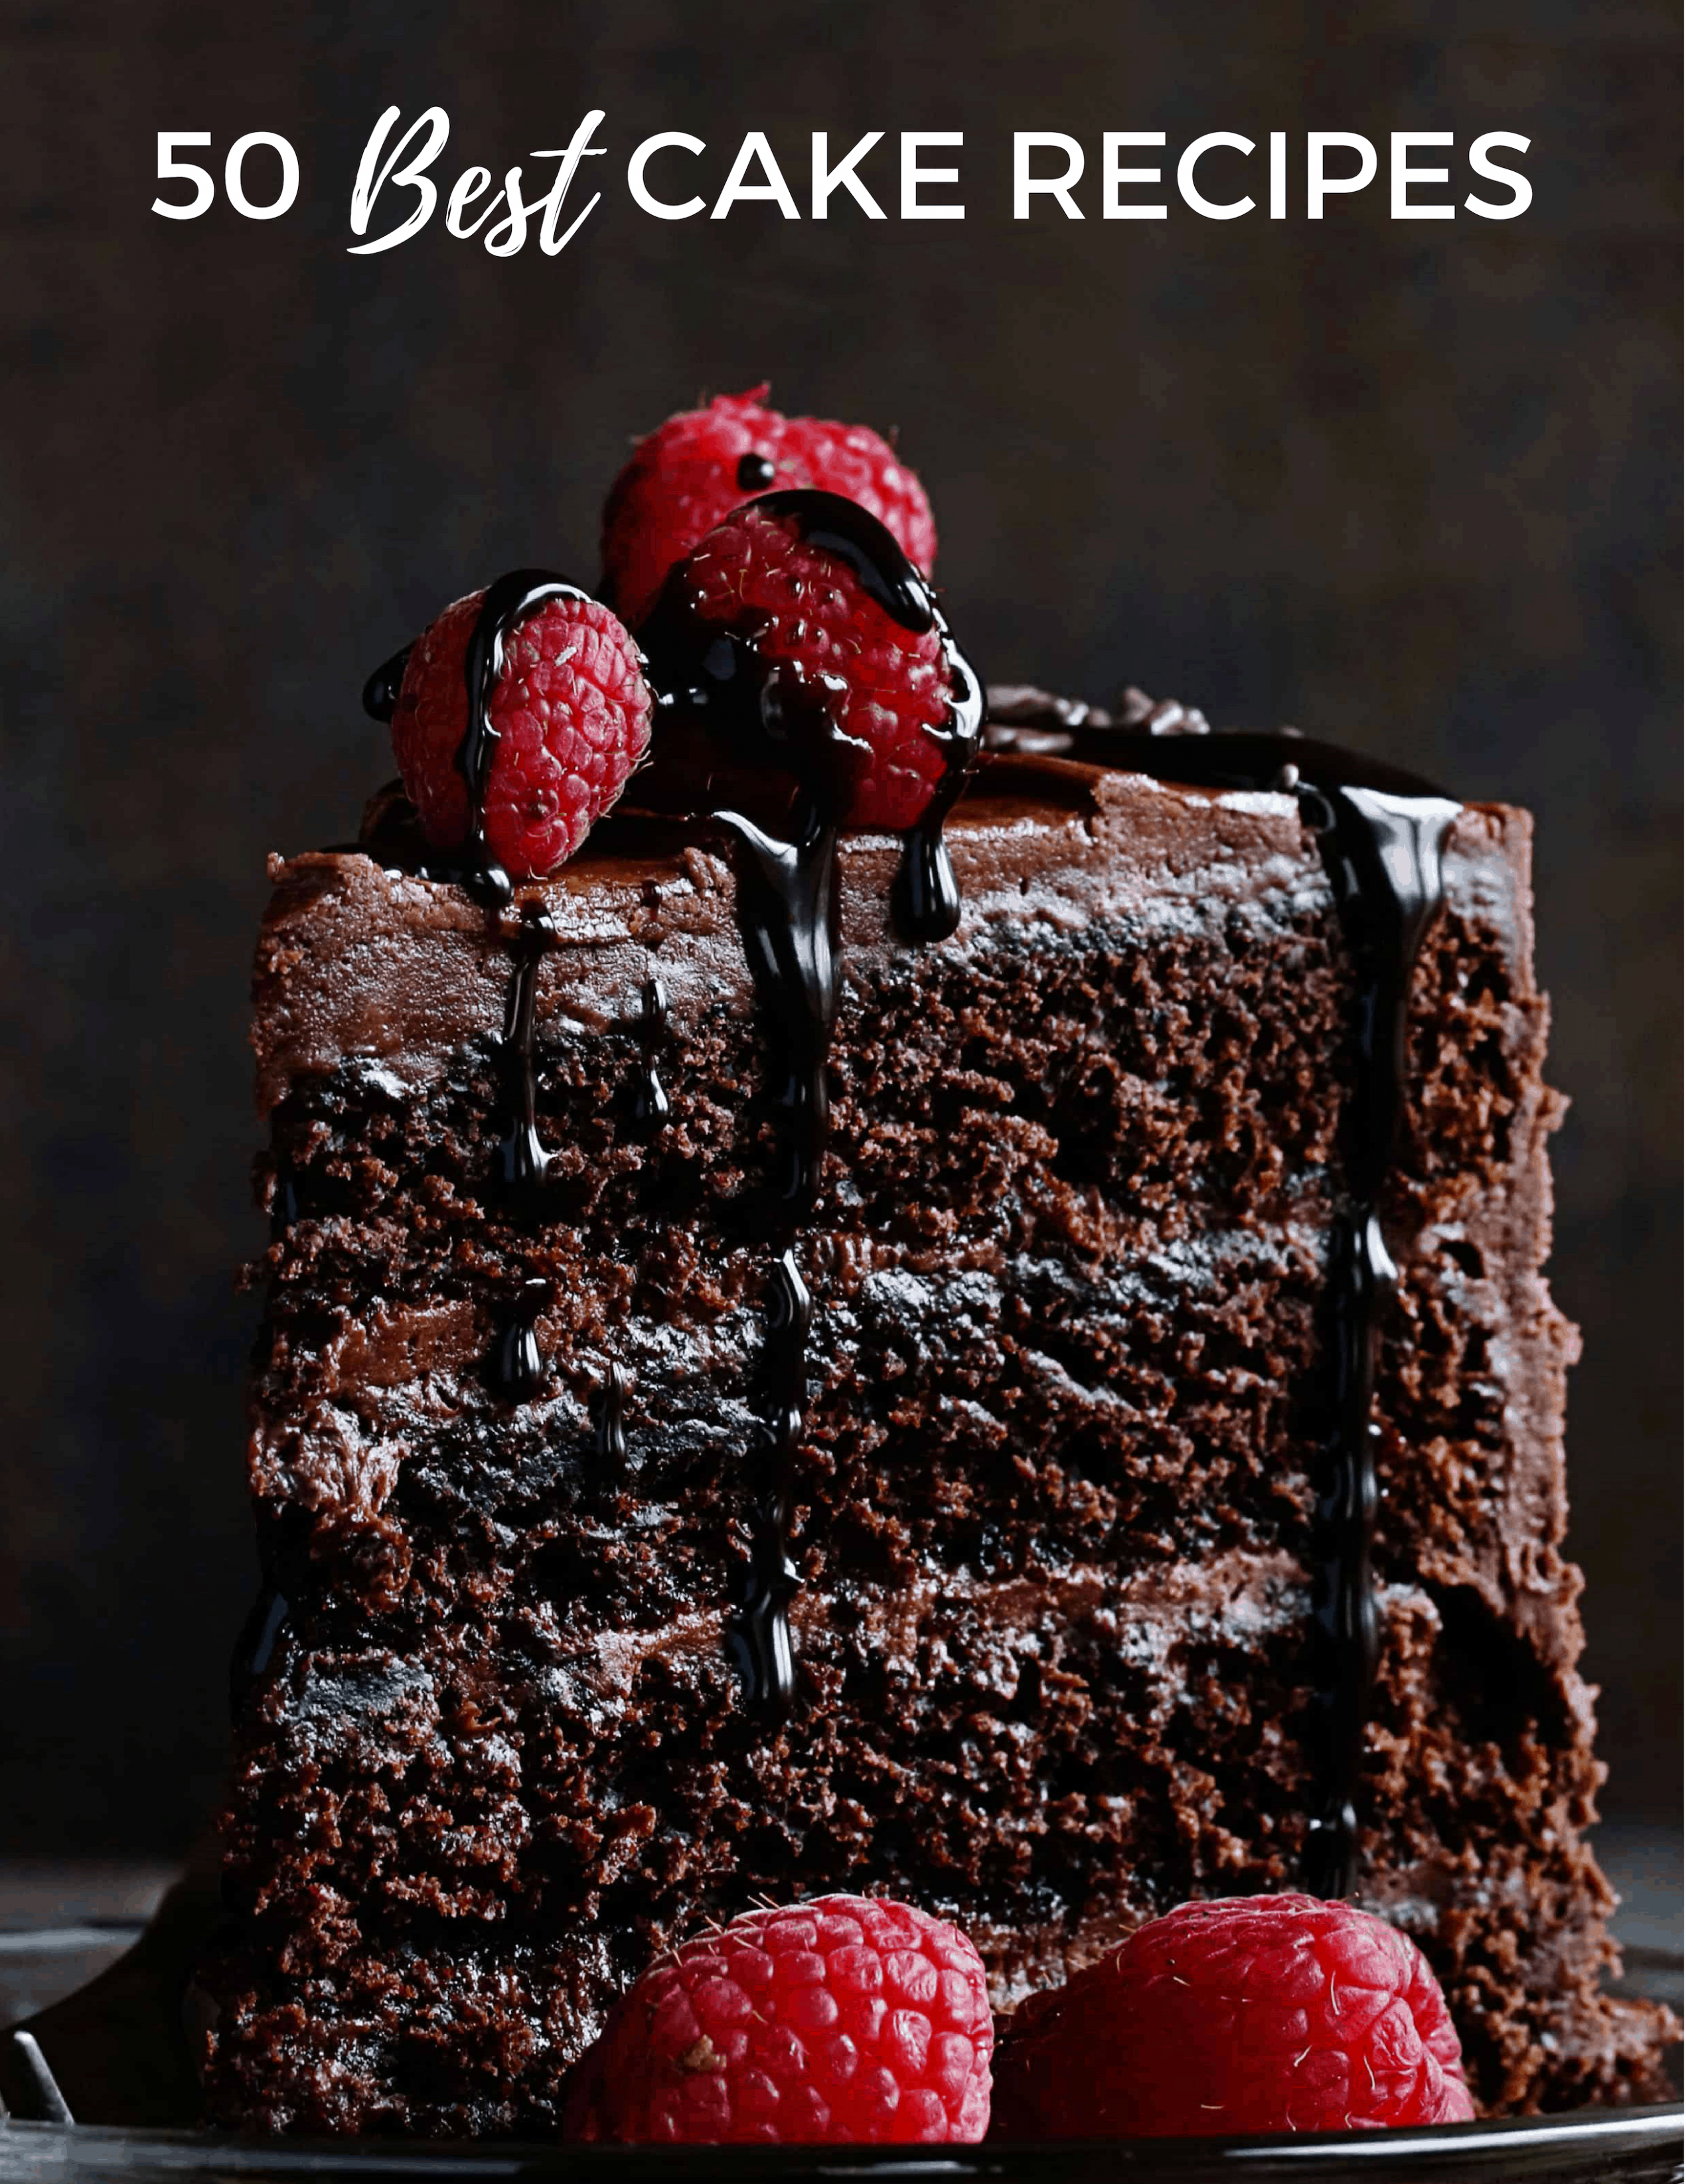 The 10 Best Cake Recipes in the World | i am baker - Recipes Cake Pdf